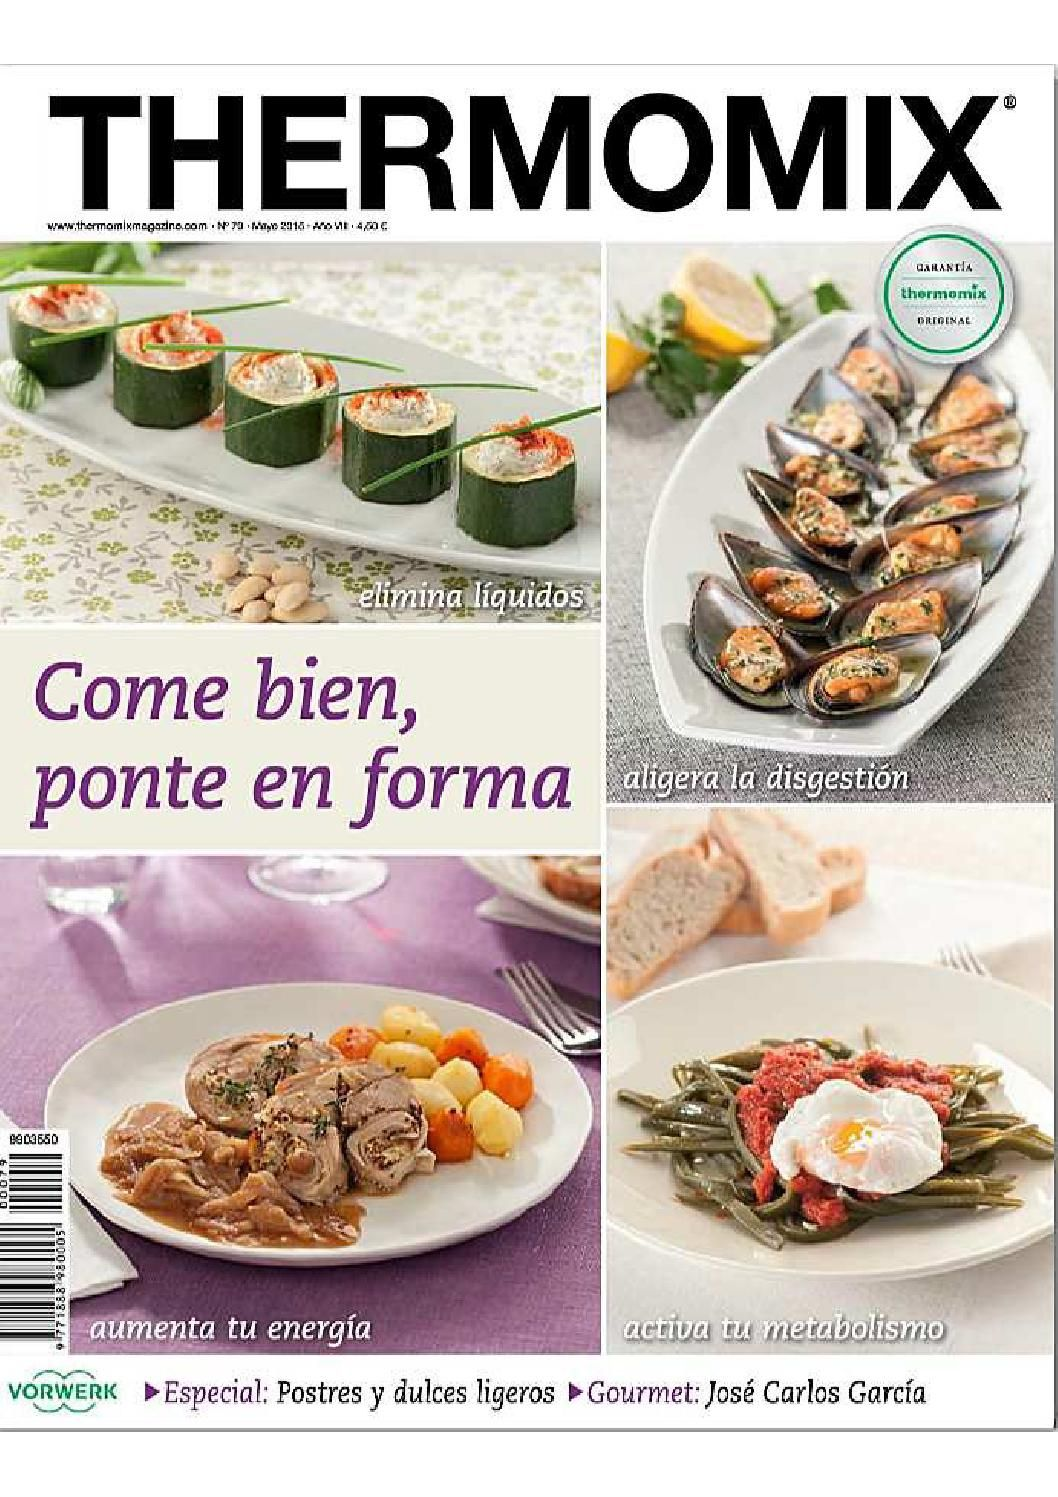 Libro De Postres Thermomix Thermomix Magazine Mayo 2015 Thermomix Thermomix